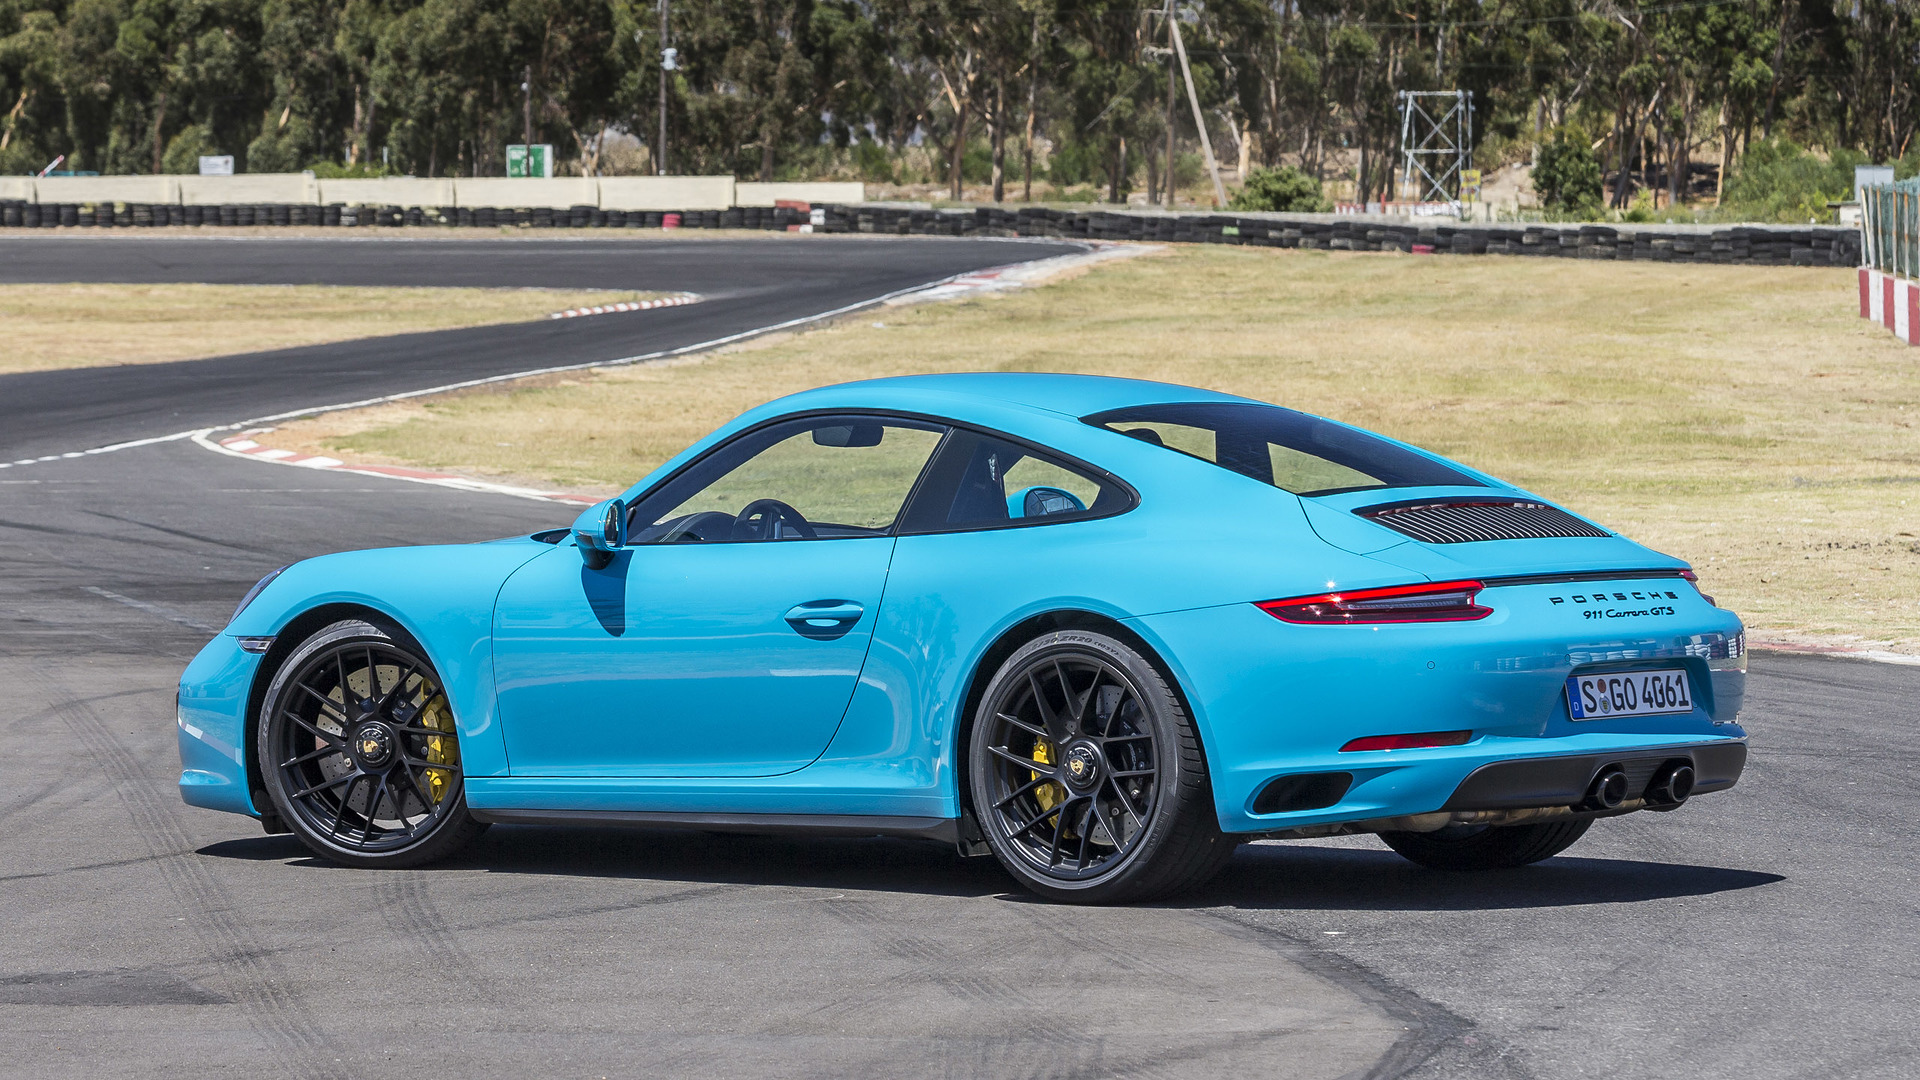 911 Carrera Gts >> 2017 Porsche 911 Carrera Gts First Drive Falling For The